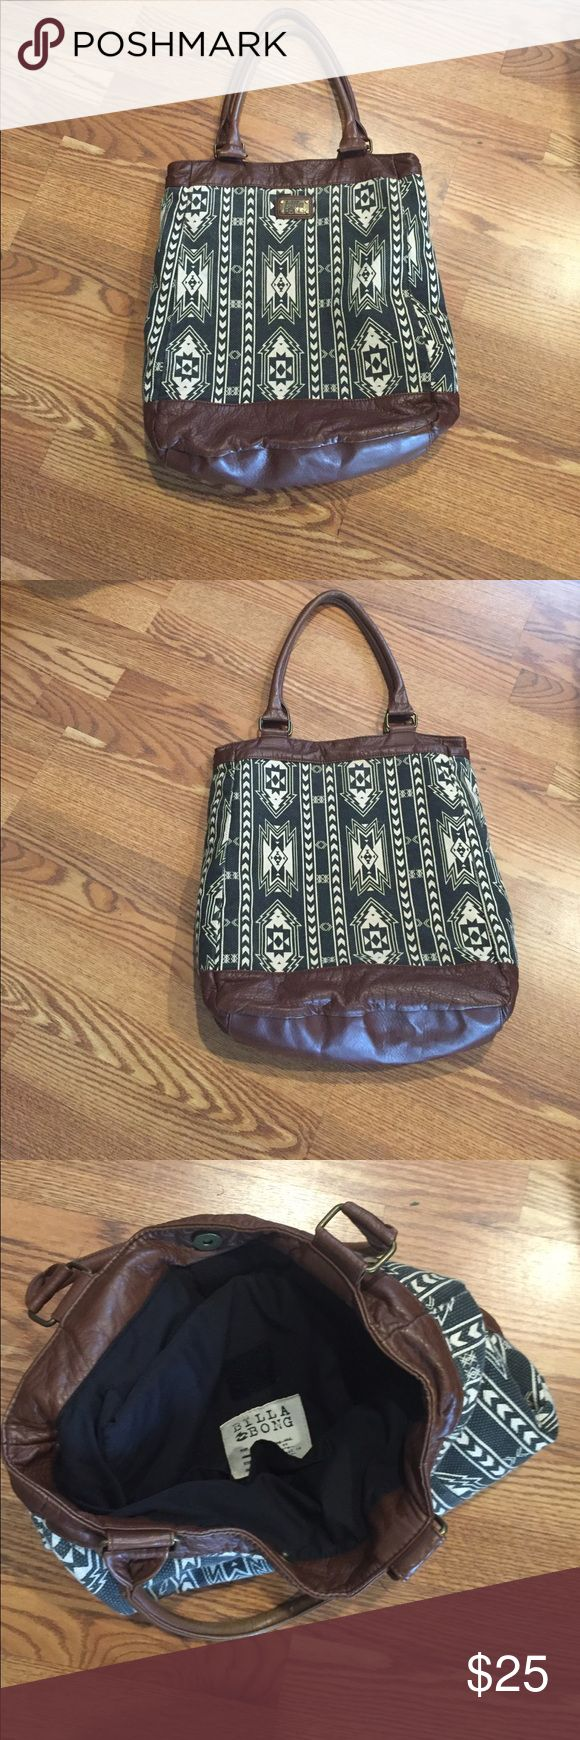 Billabong Aztec Print Tote Bag Large bag with leather handles and bottom, nice and roomy, big enough for students or teachers, in great condition, with inside pocket to carry a small laptop Billabong Bags Shoulder Bags